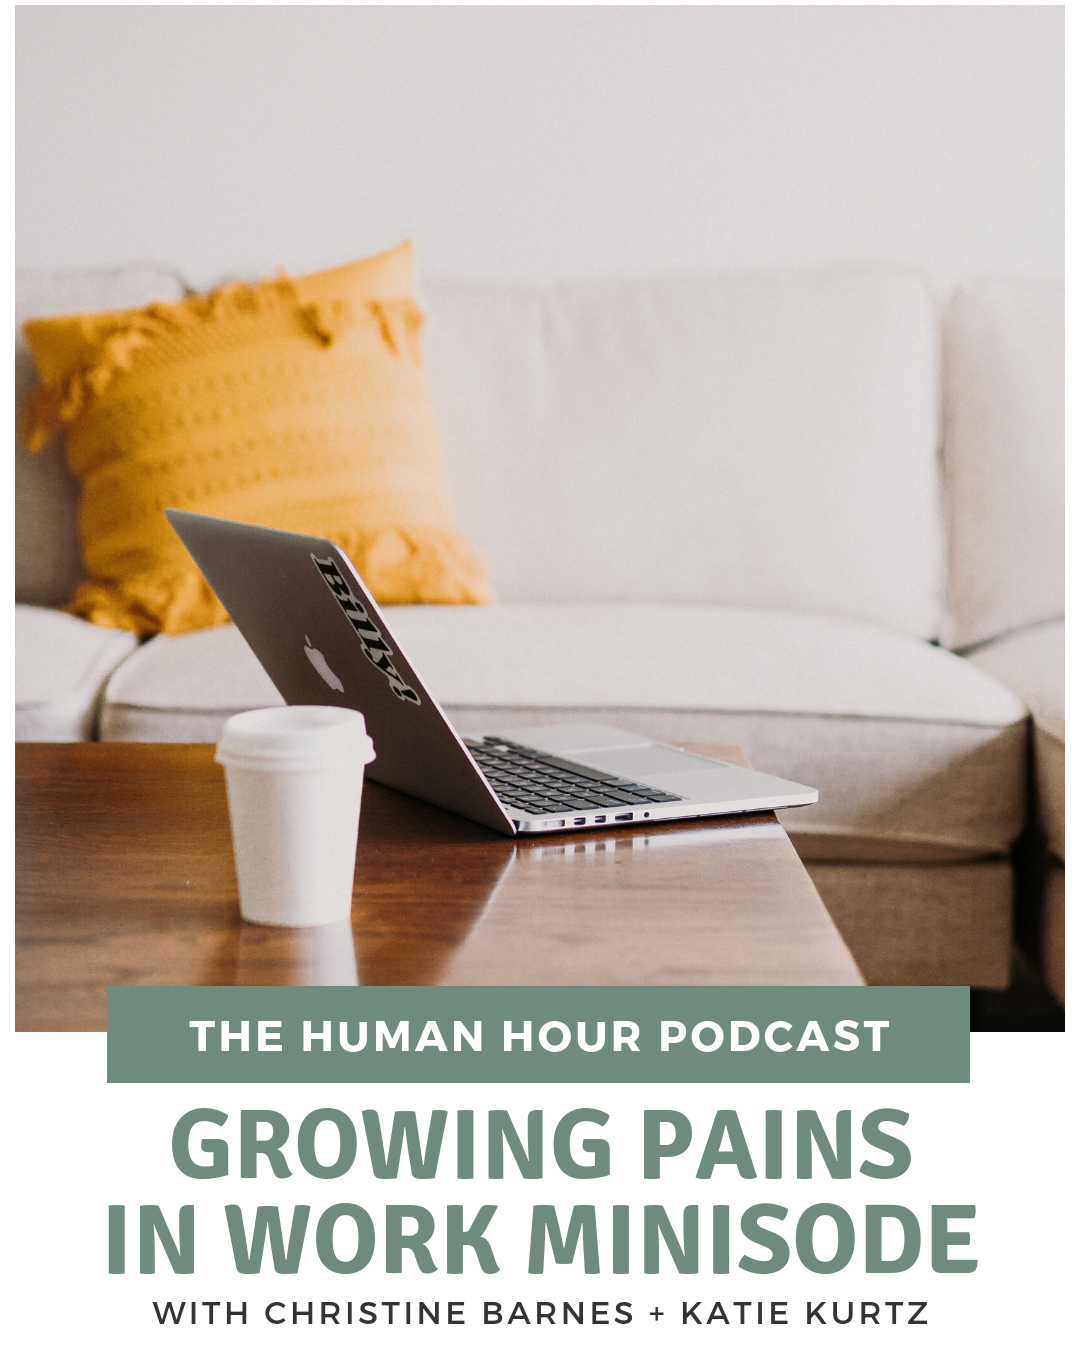 S2 E4: Growing Pains in Work Minisode with Christine Barnes + Katie Kurtz